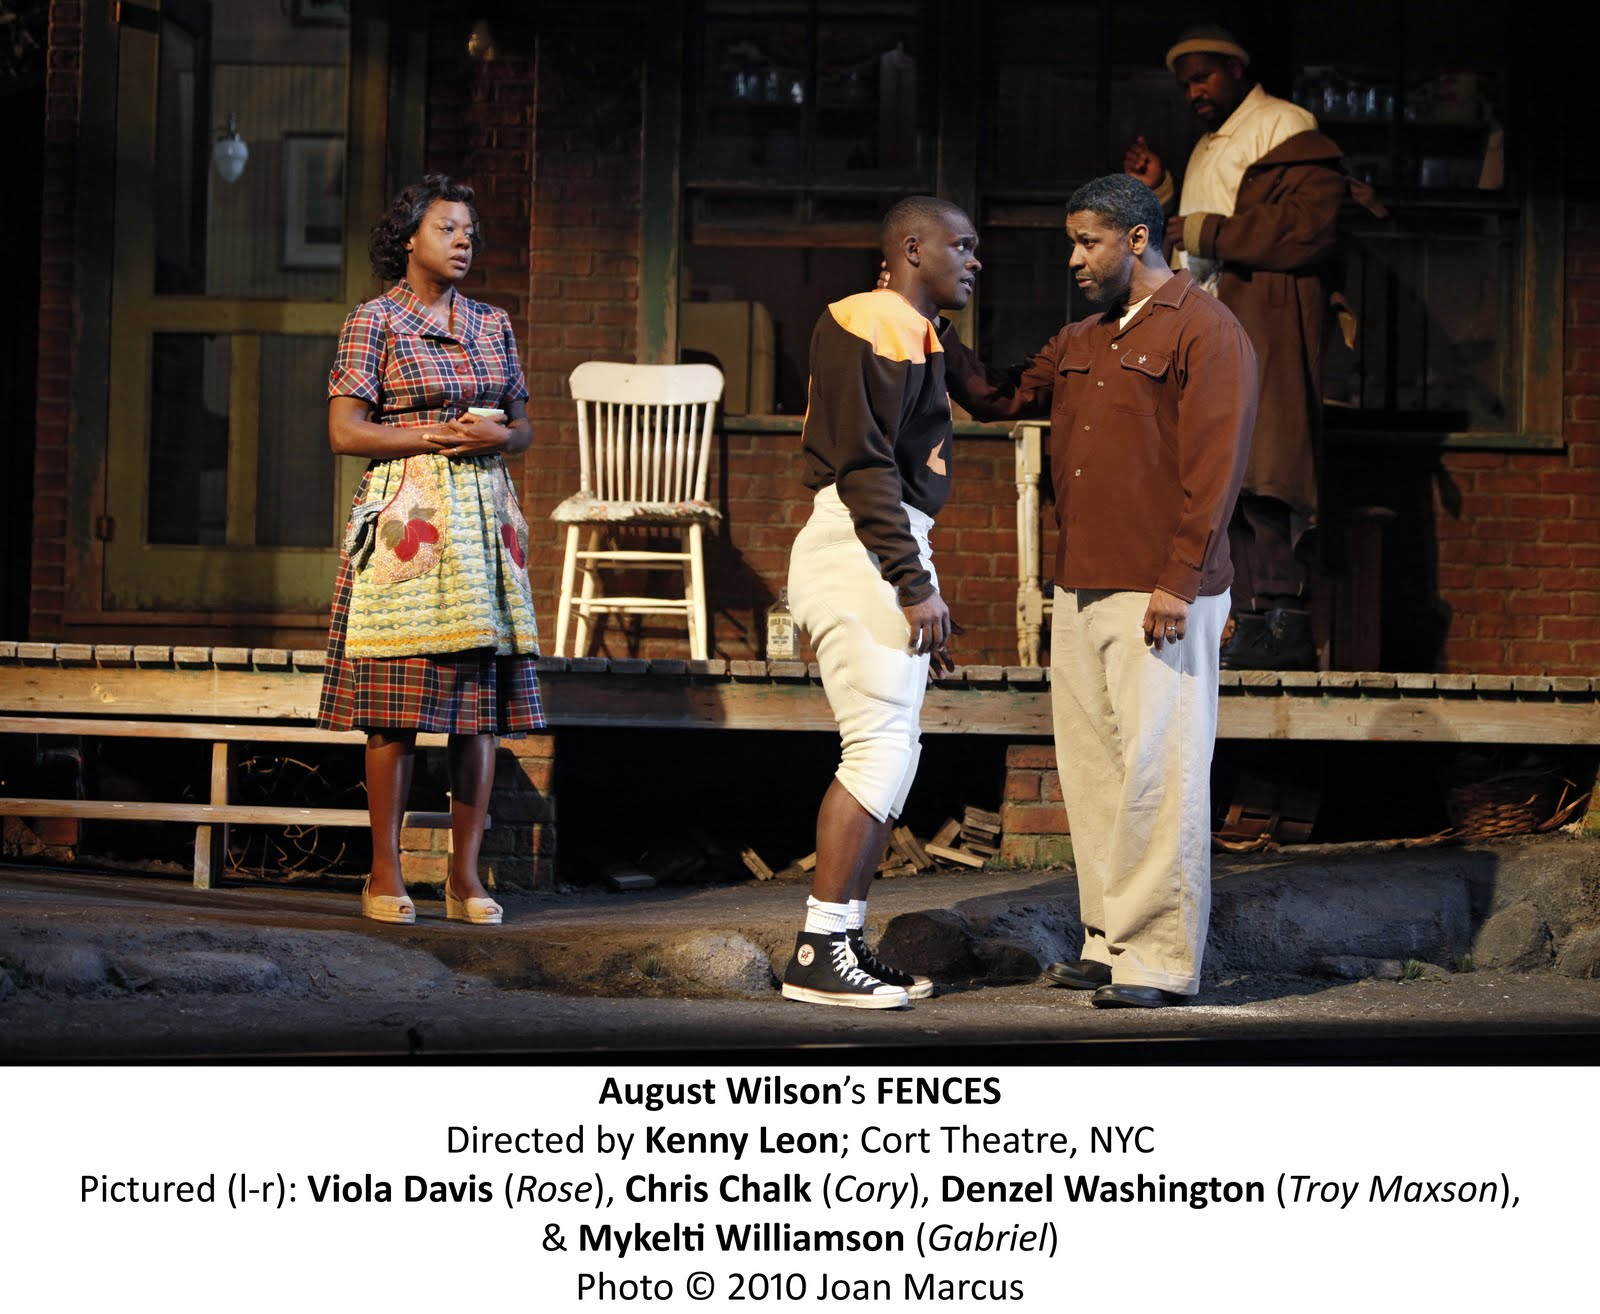 fences by august wilson Despite being a titanic figure of american theater, wilson's work has never been adapted for the screen before denzel washington's fences why.